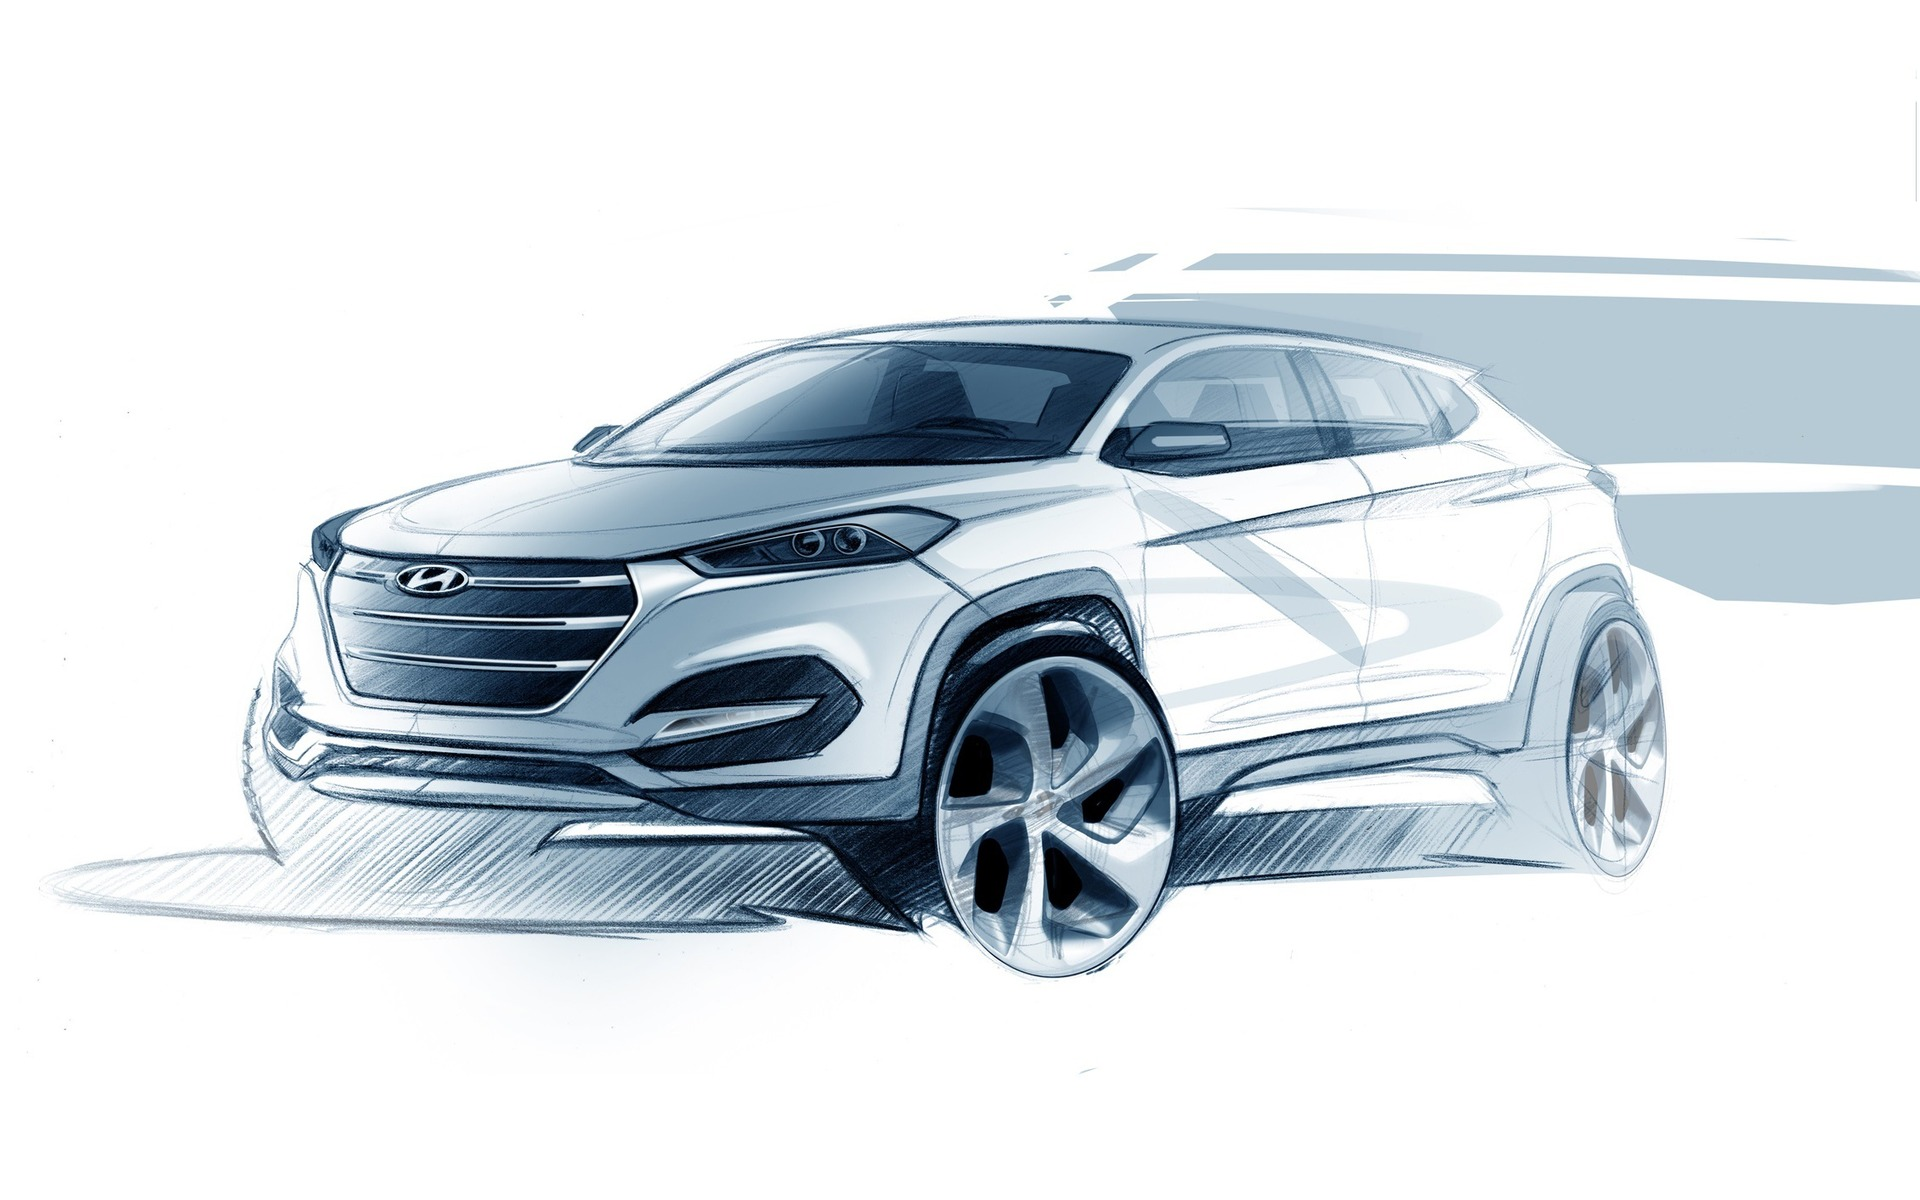 First Sketches Of The 2016 Hyundai Tucson - The Car Guide